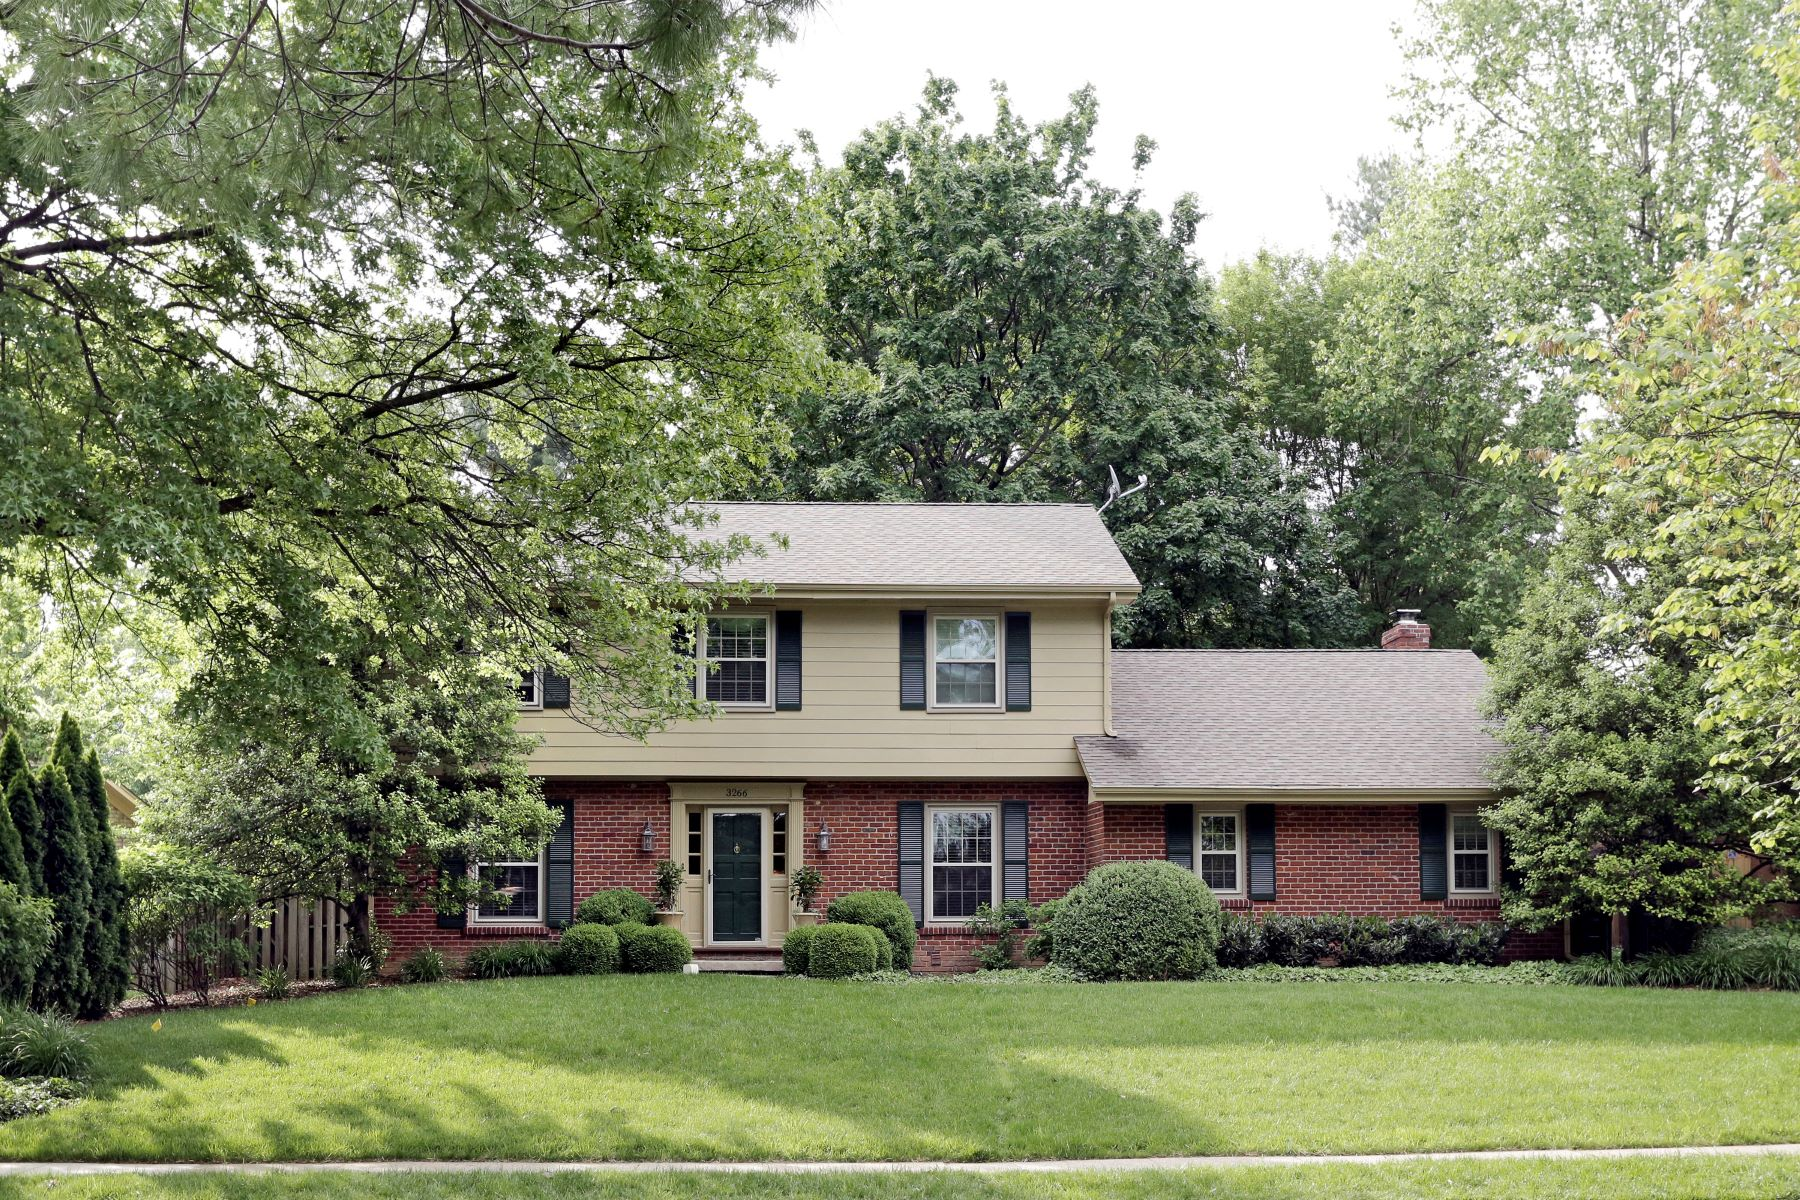 Single Family Home for Sale at 329 S. Mill Street 3266 Pepperhill Road Lexington, Kentucky 40502 United States